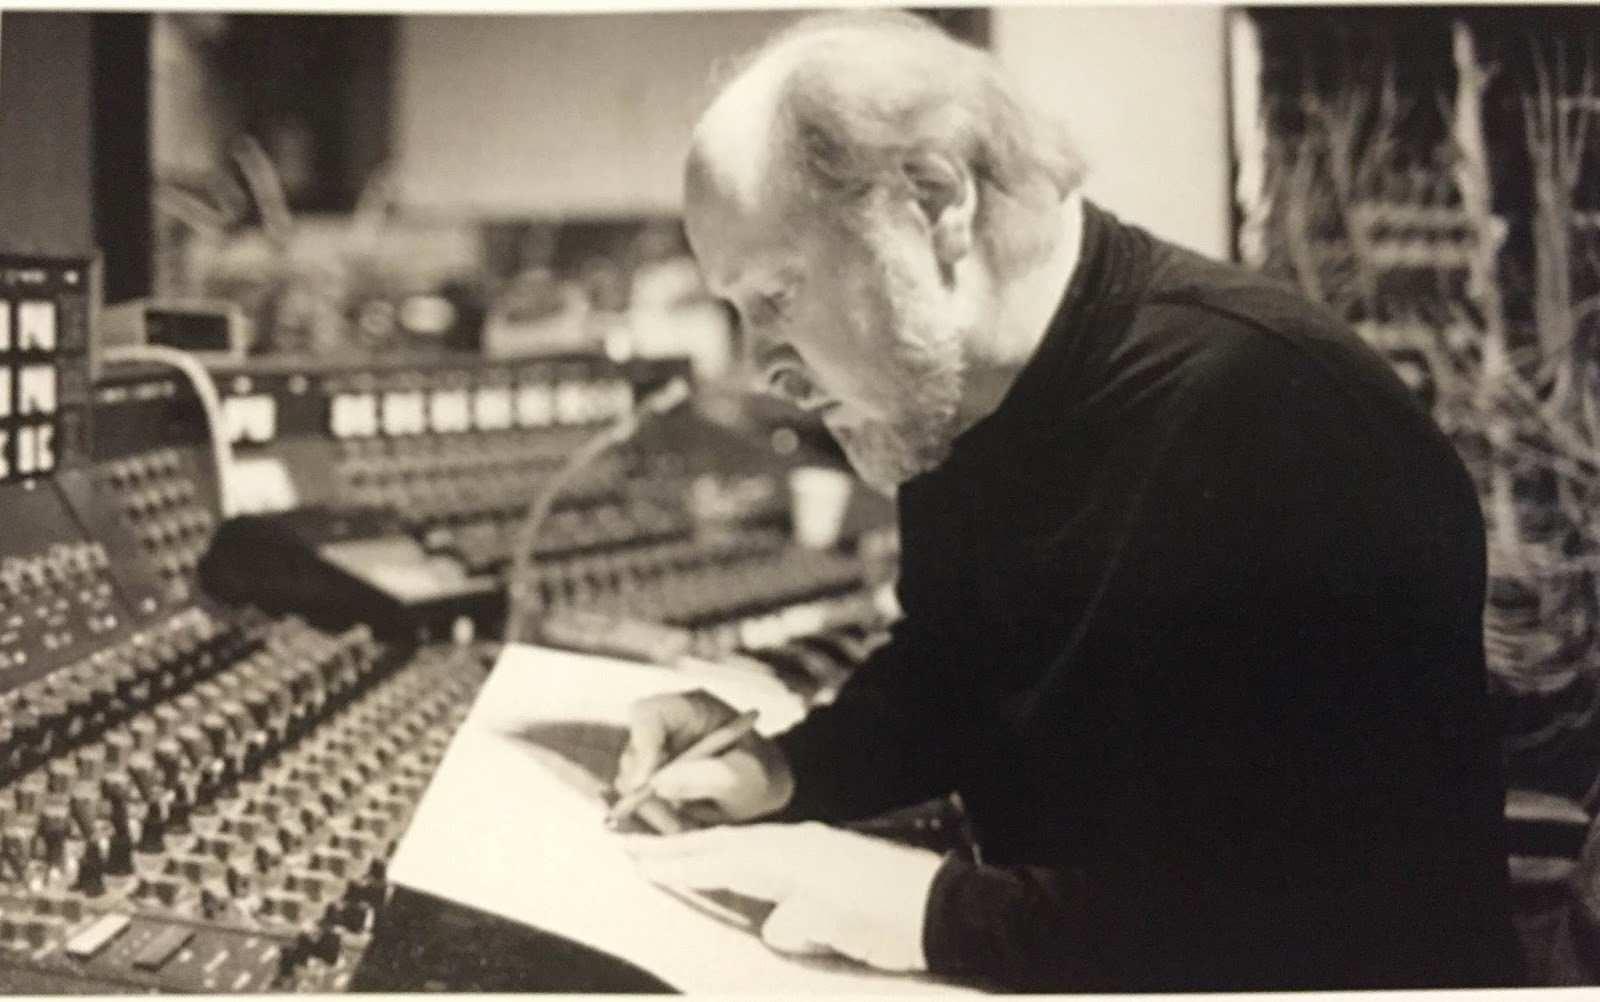 John Williams in Studio One Control Room making notes on the EMI TG12345 mixing console